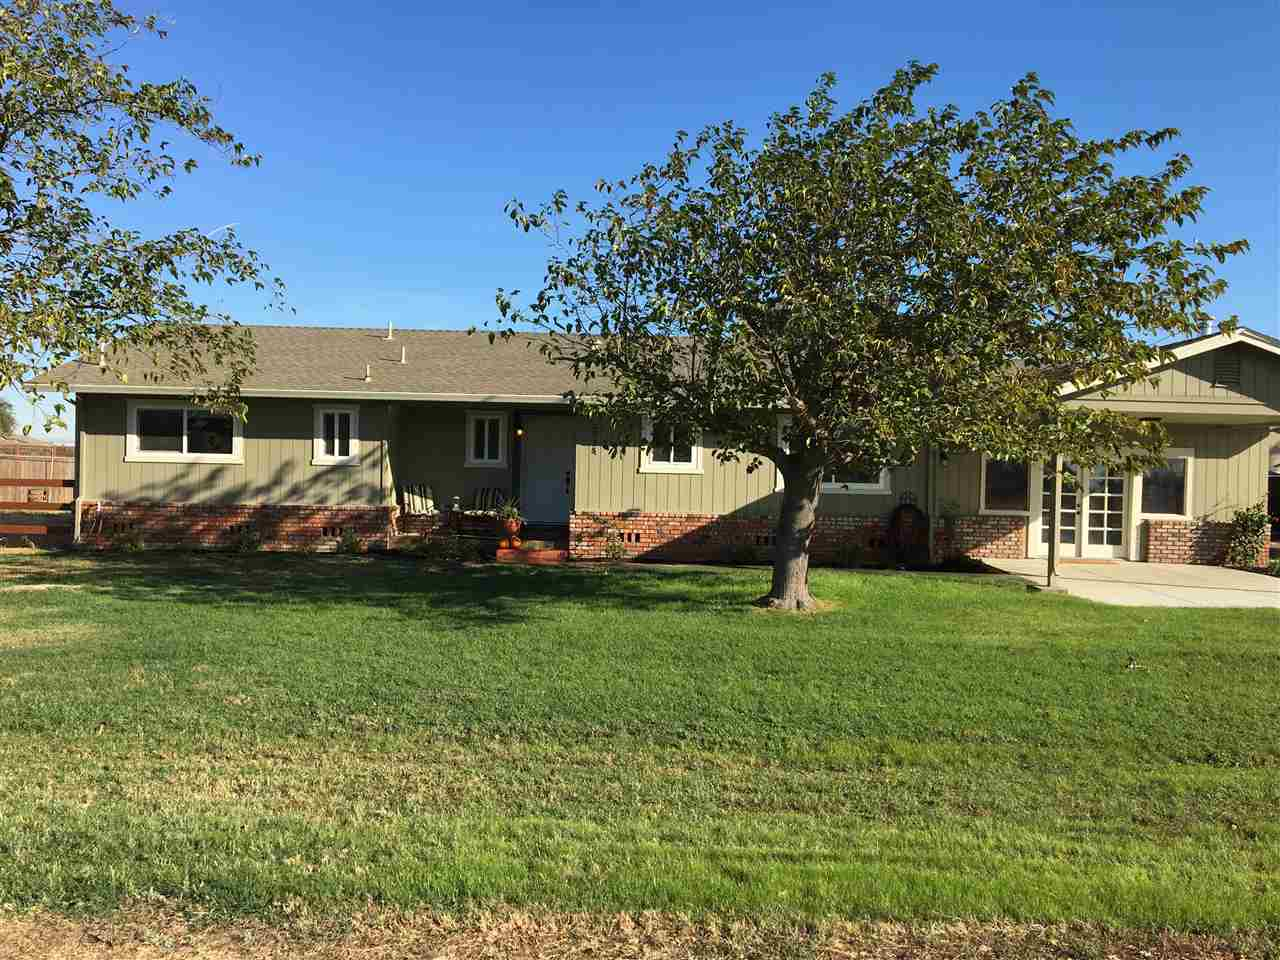 Single Family Home for Rent at 8150 Byron Hwy 8150 Byron Hwy Brentwood, California 94513 United States